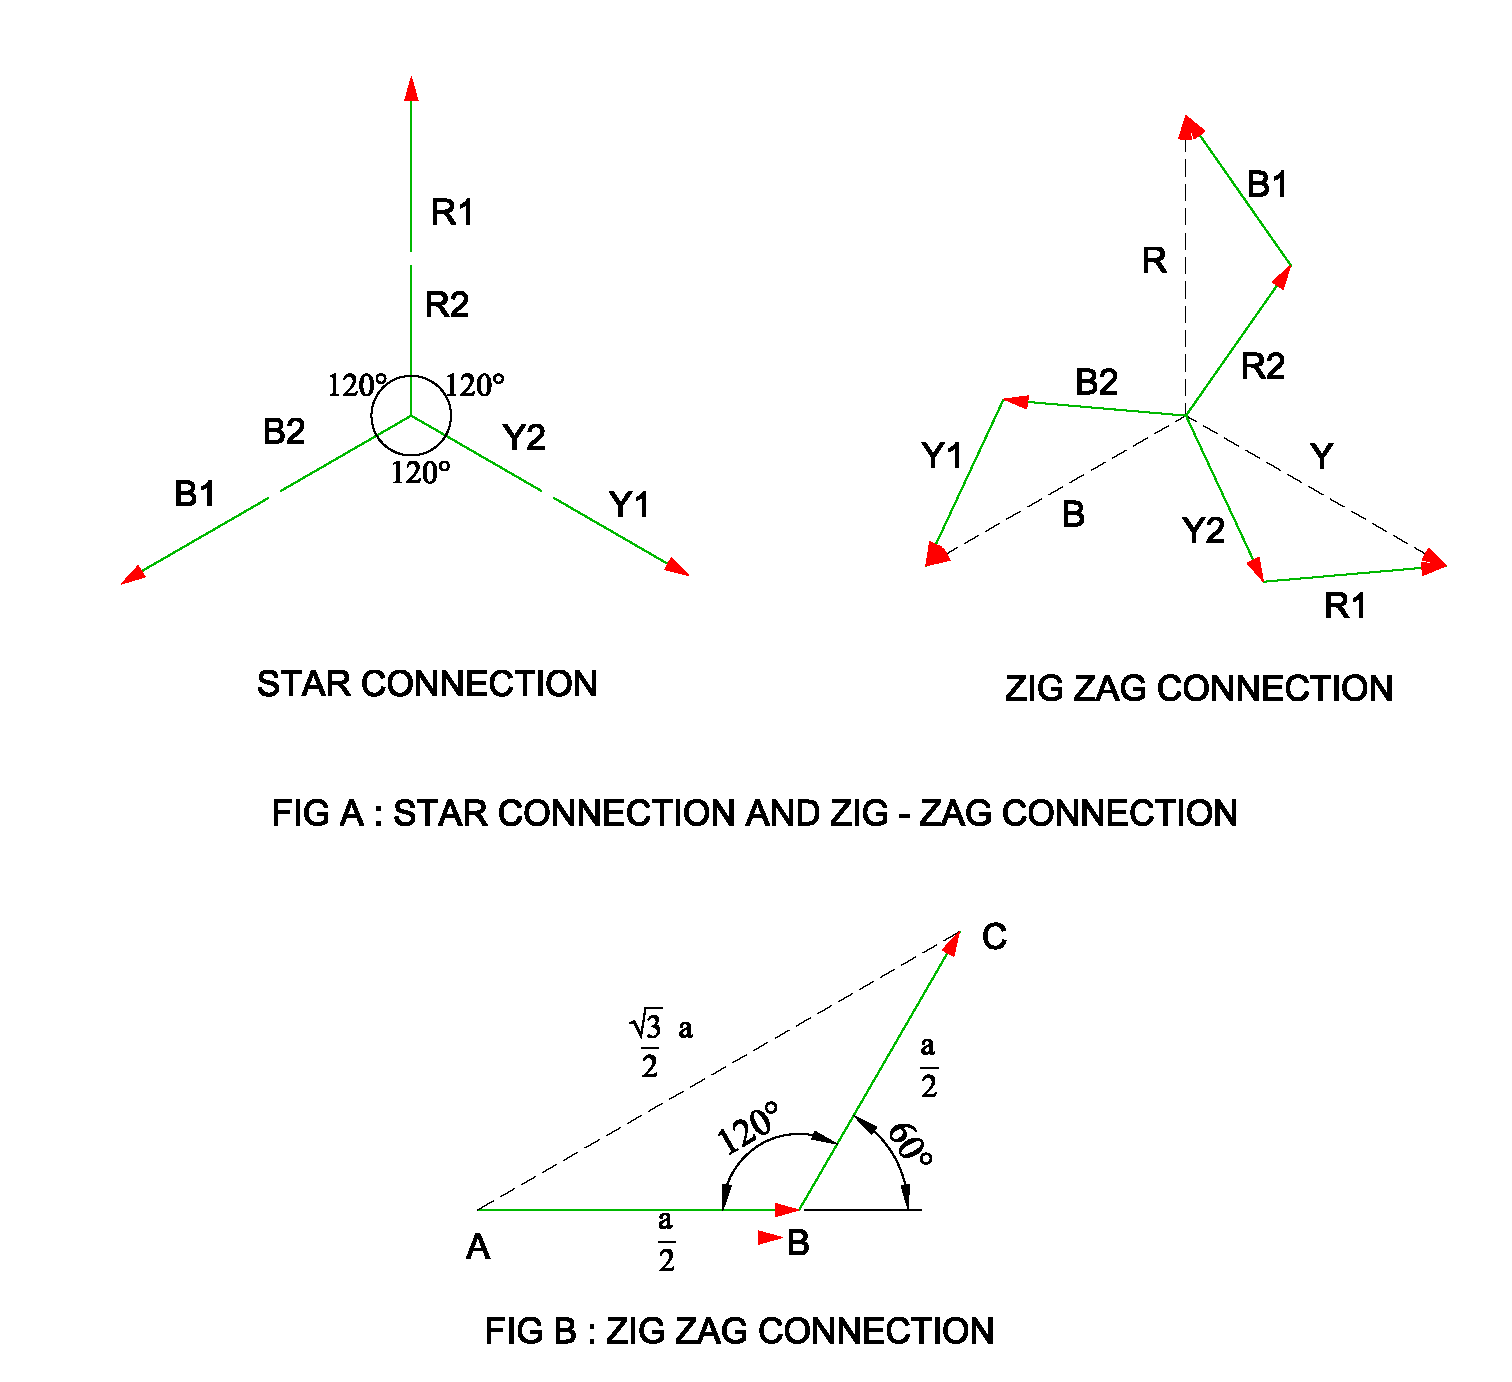 small resolution of fig a shows star connection in which each phase consists of two windings in order to convert this winding into zig zag connection